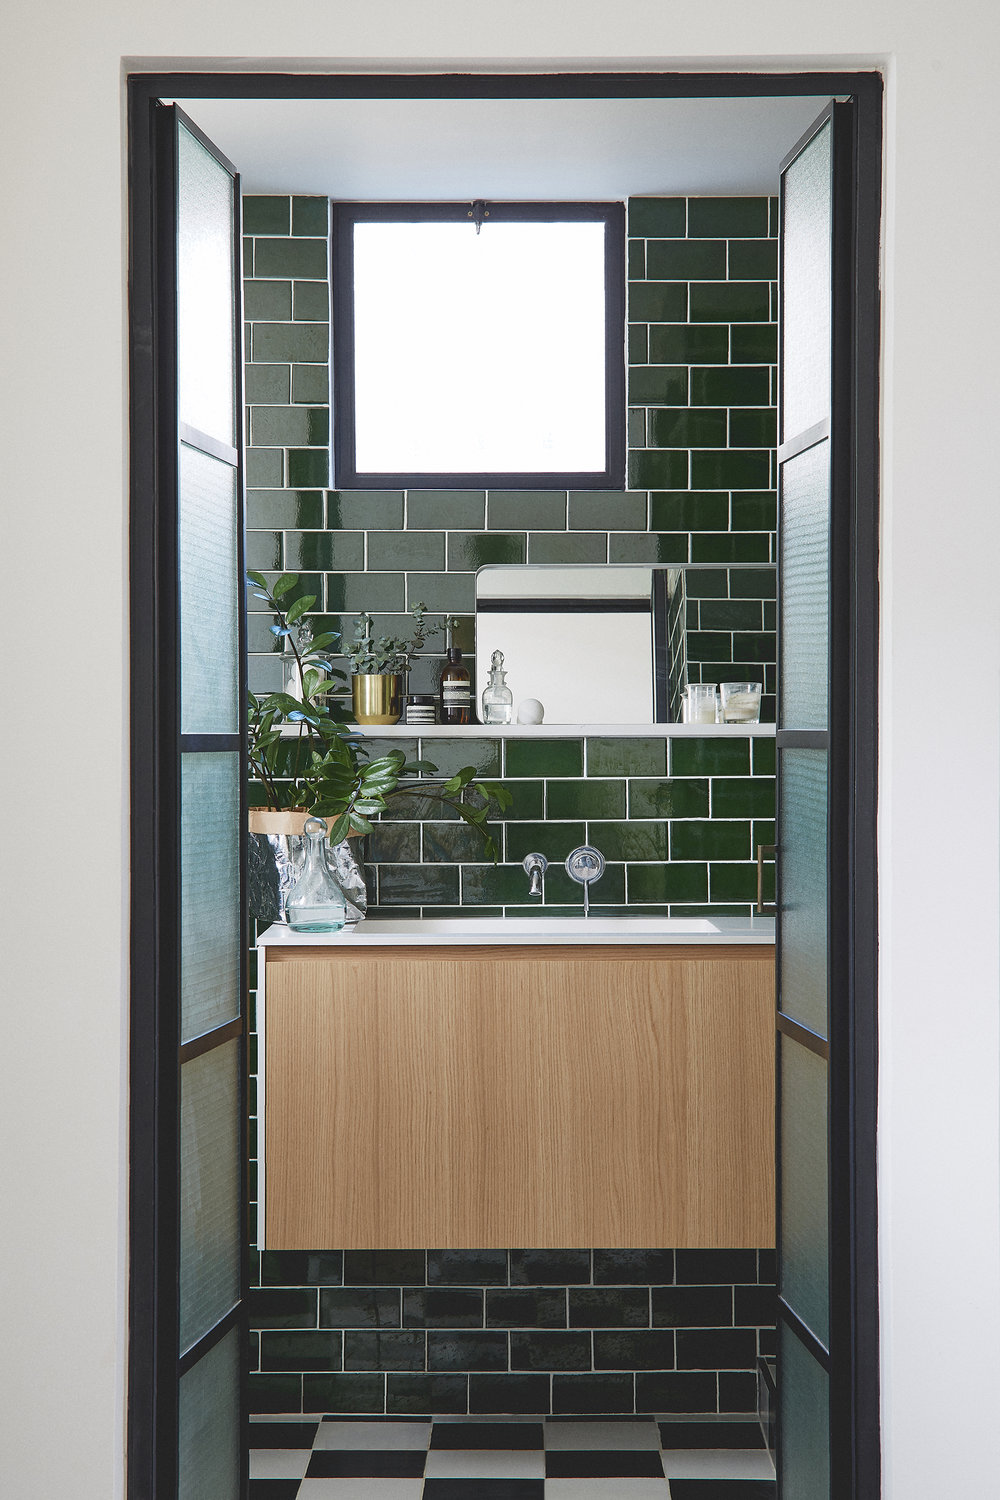 green subway tiles bathroom checkers-like floor, steel frame doors bathroom